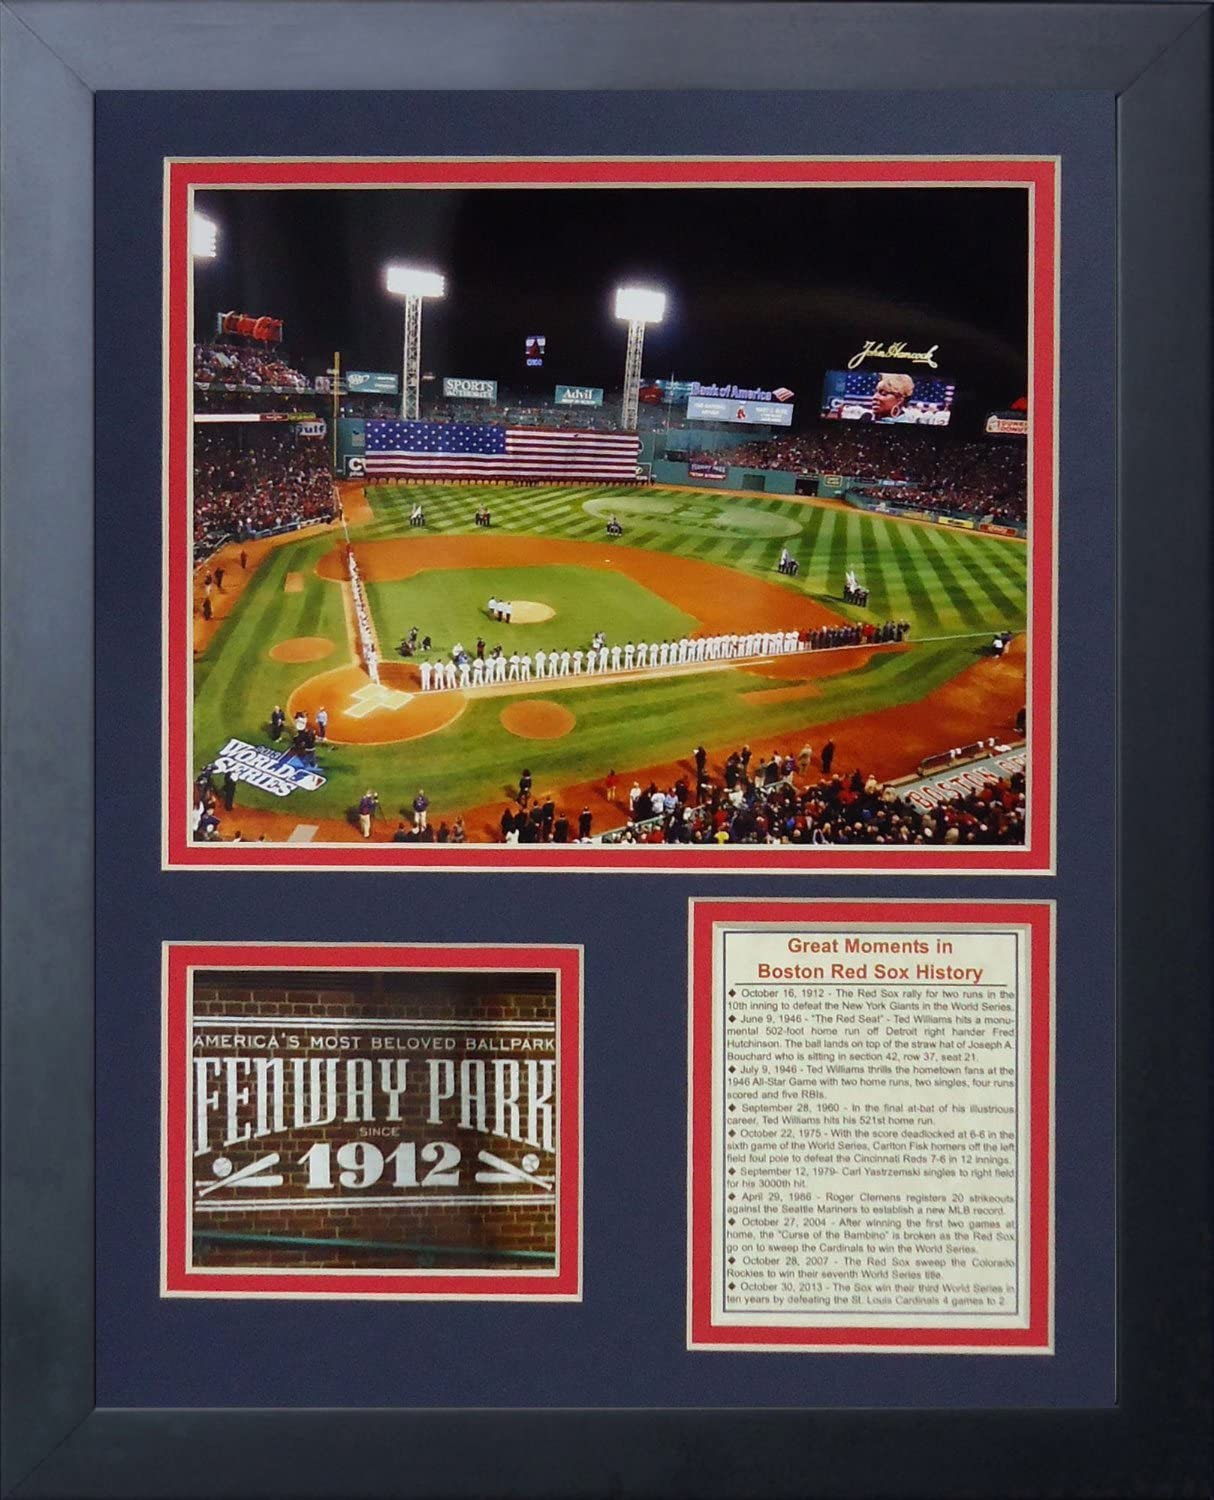 Legends Never Die Fenway Park 2013 World Series Framed Photo Collage 11 by 14-Inch